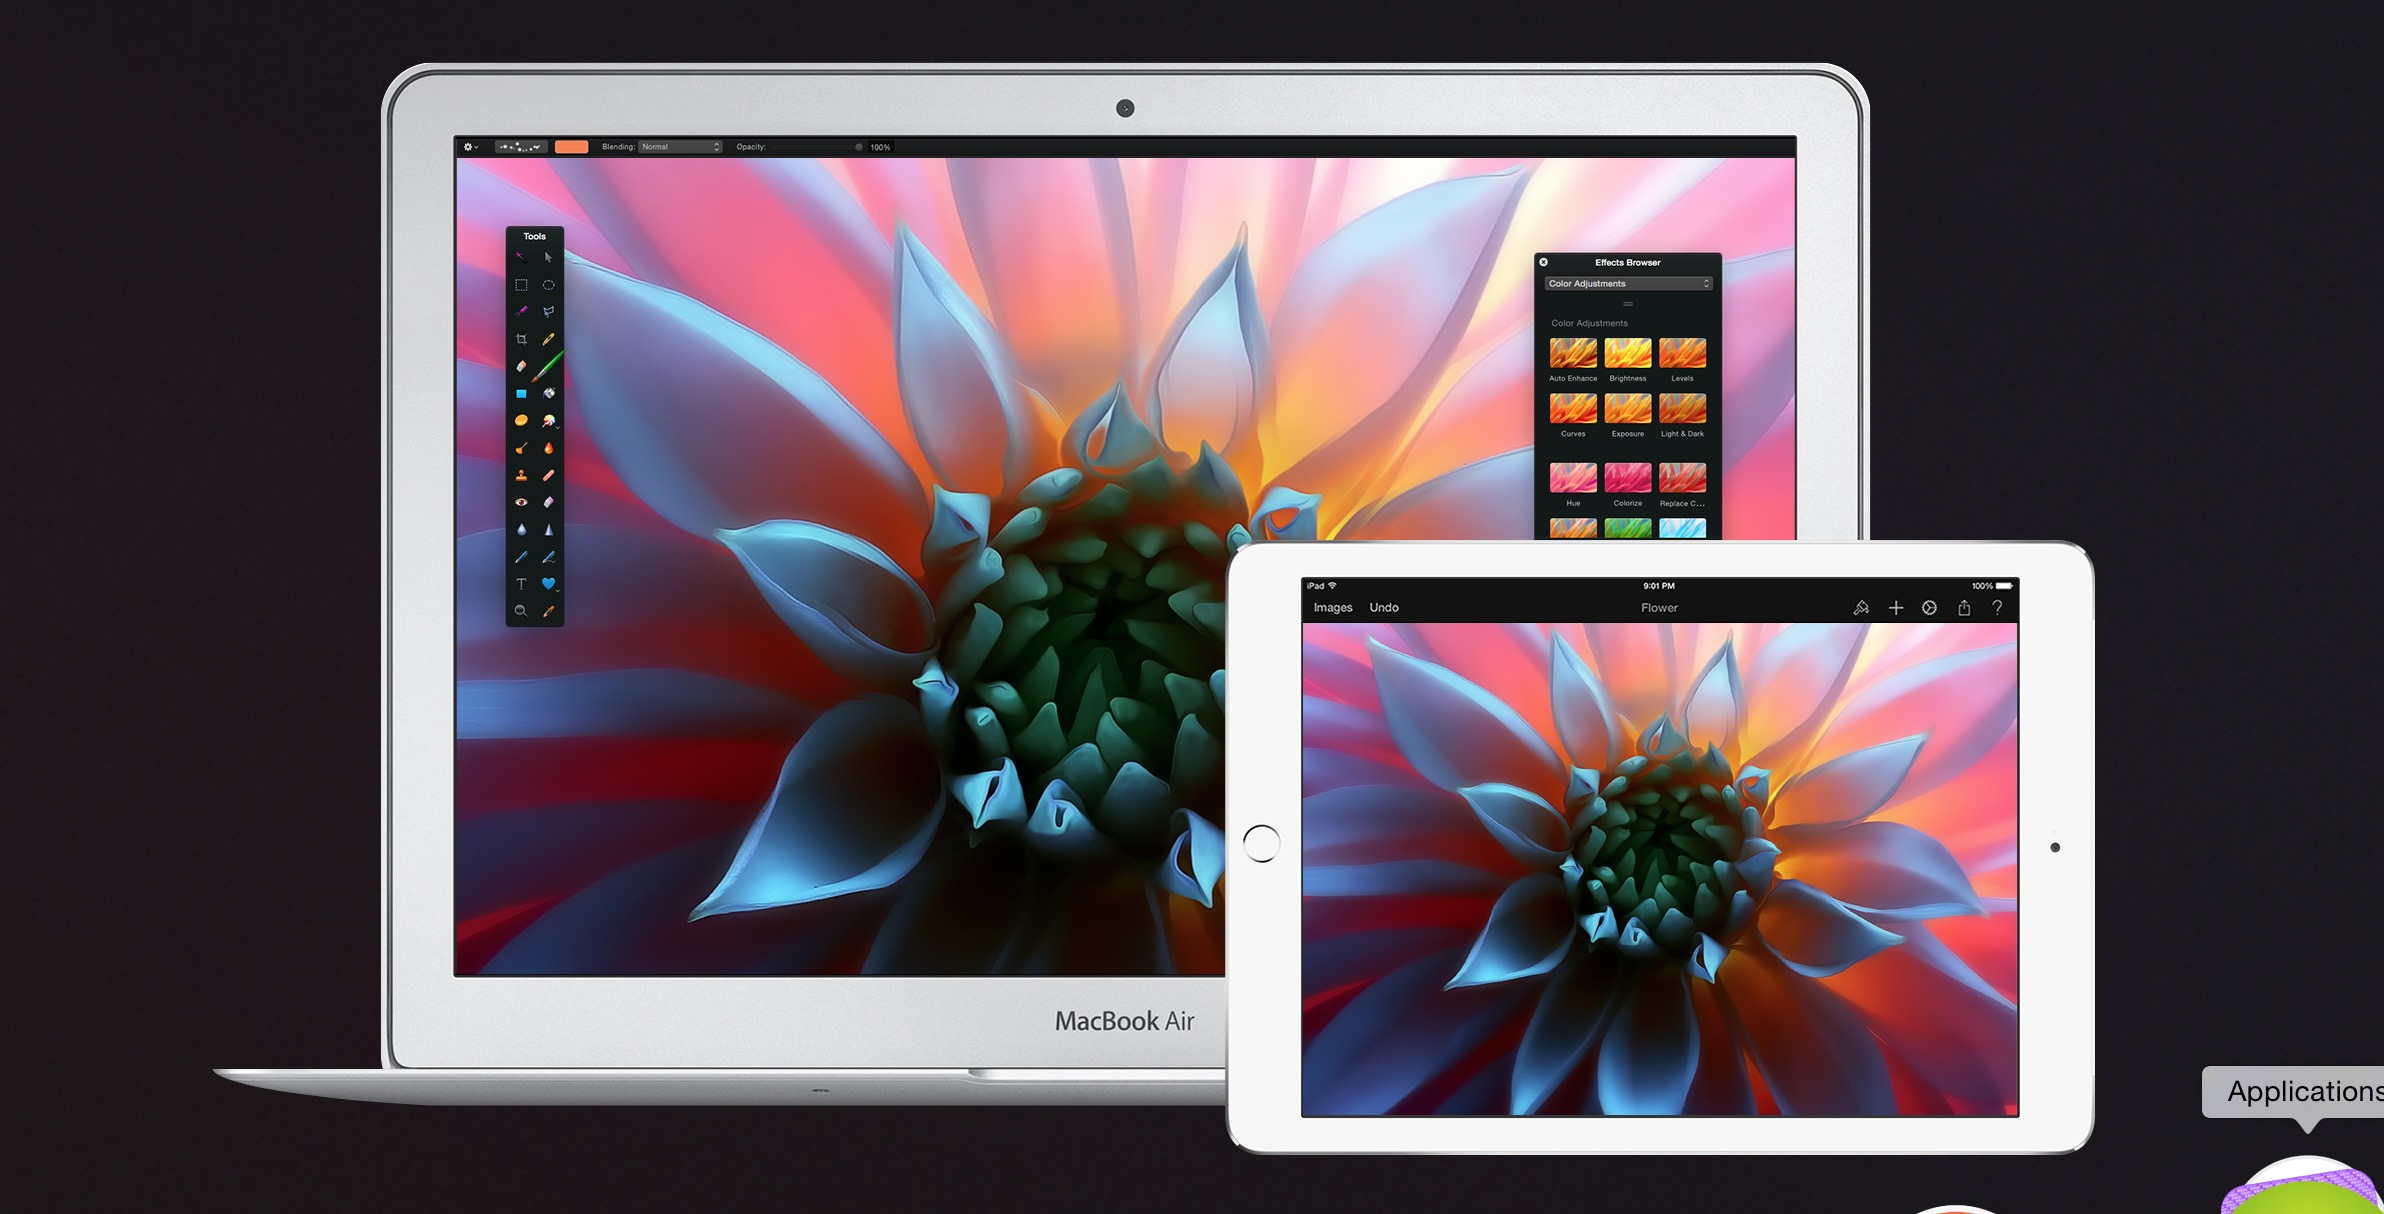 Pixelmator 1.1 for iPad adds watercolor painting, a new Color Picker and more